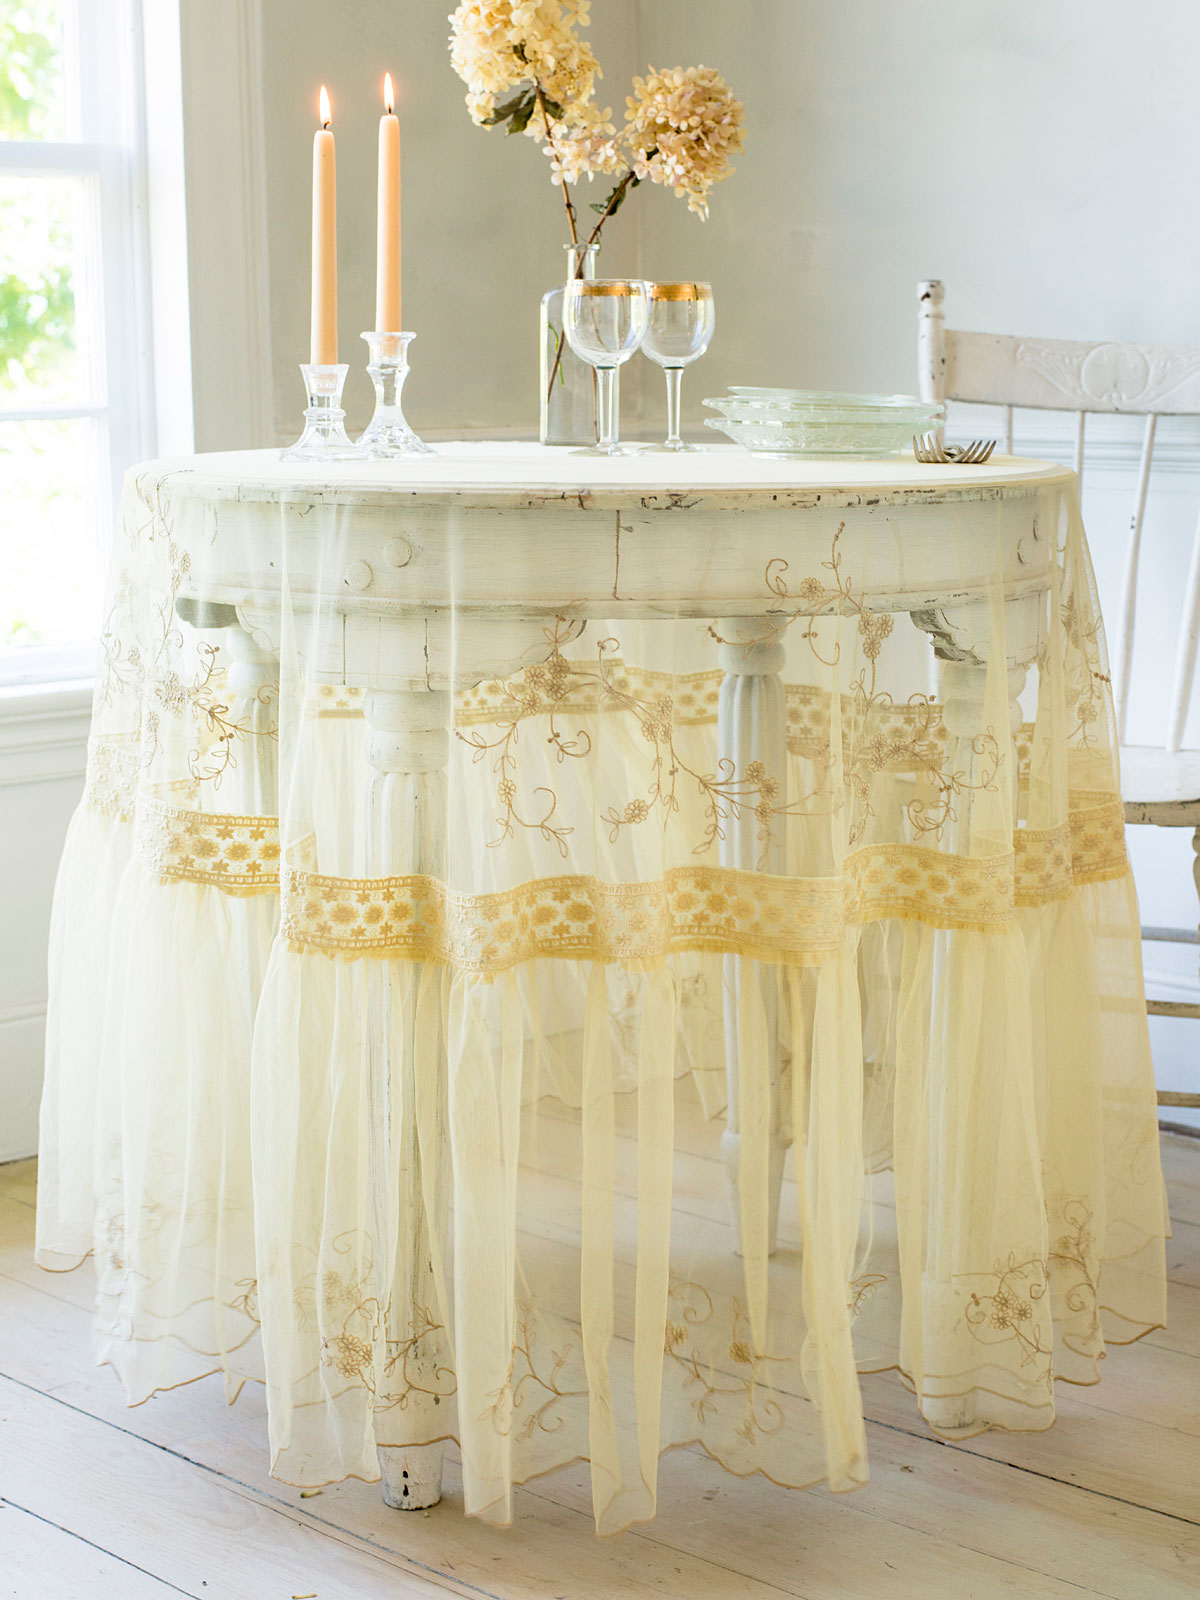 Stupendous Beloved Embroidered Tablecloth Download Free Architecture Designs Terchretrmadebymaigaardcom